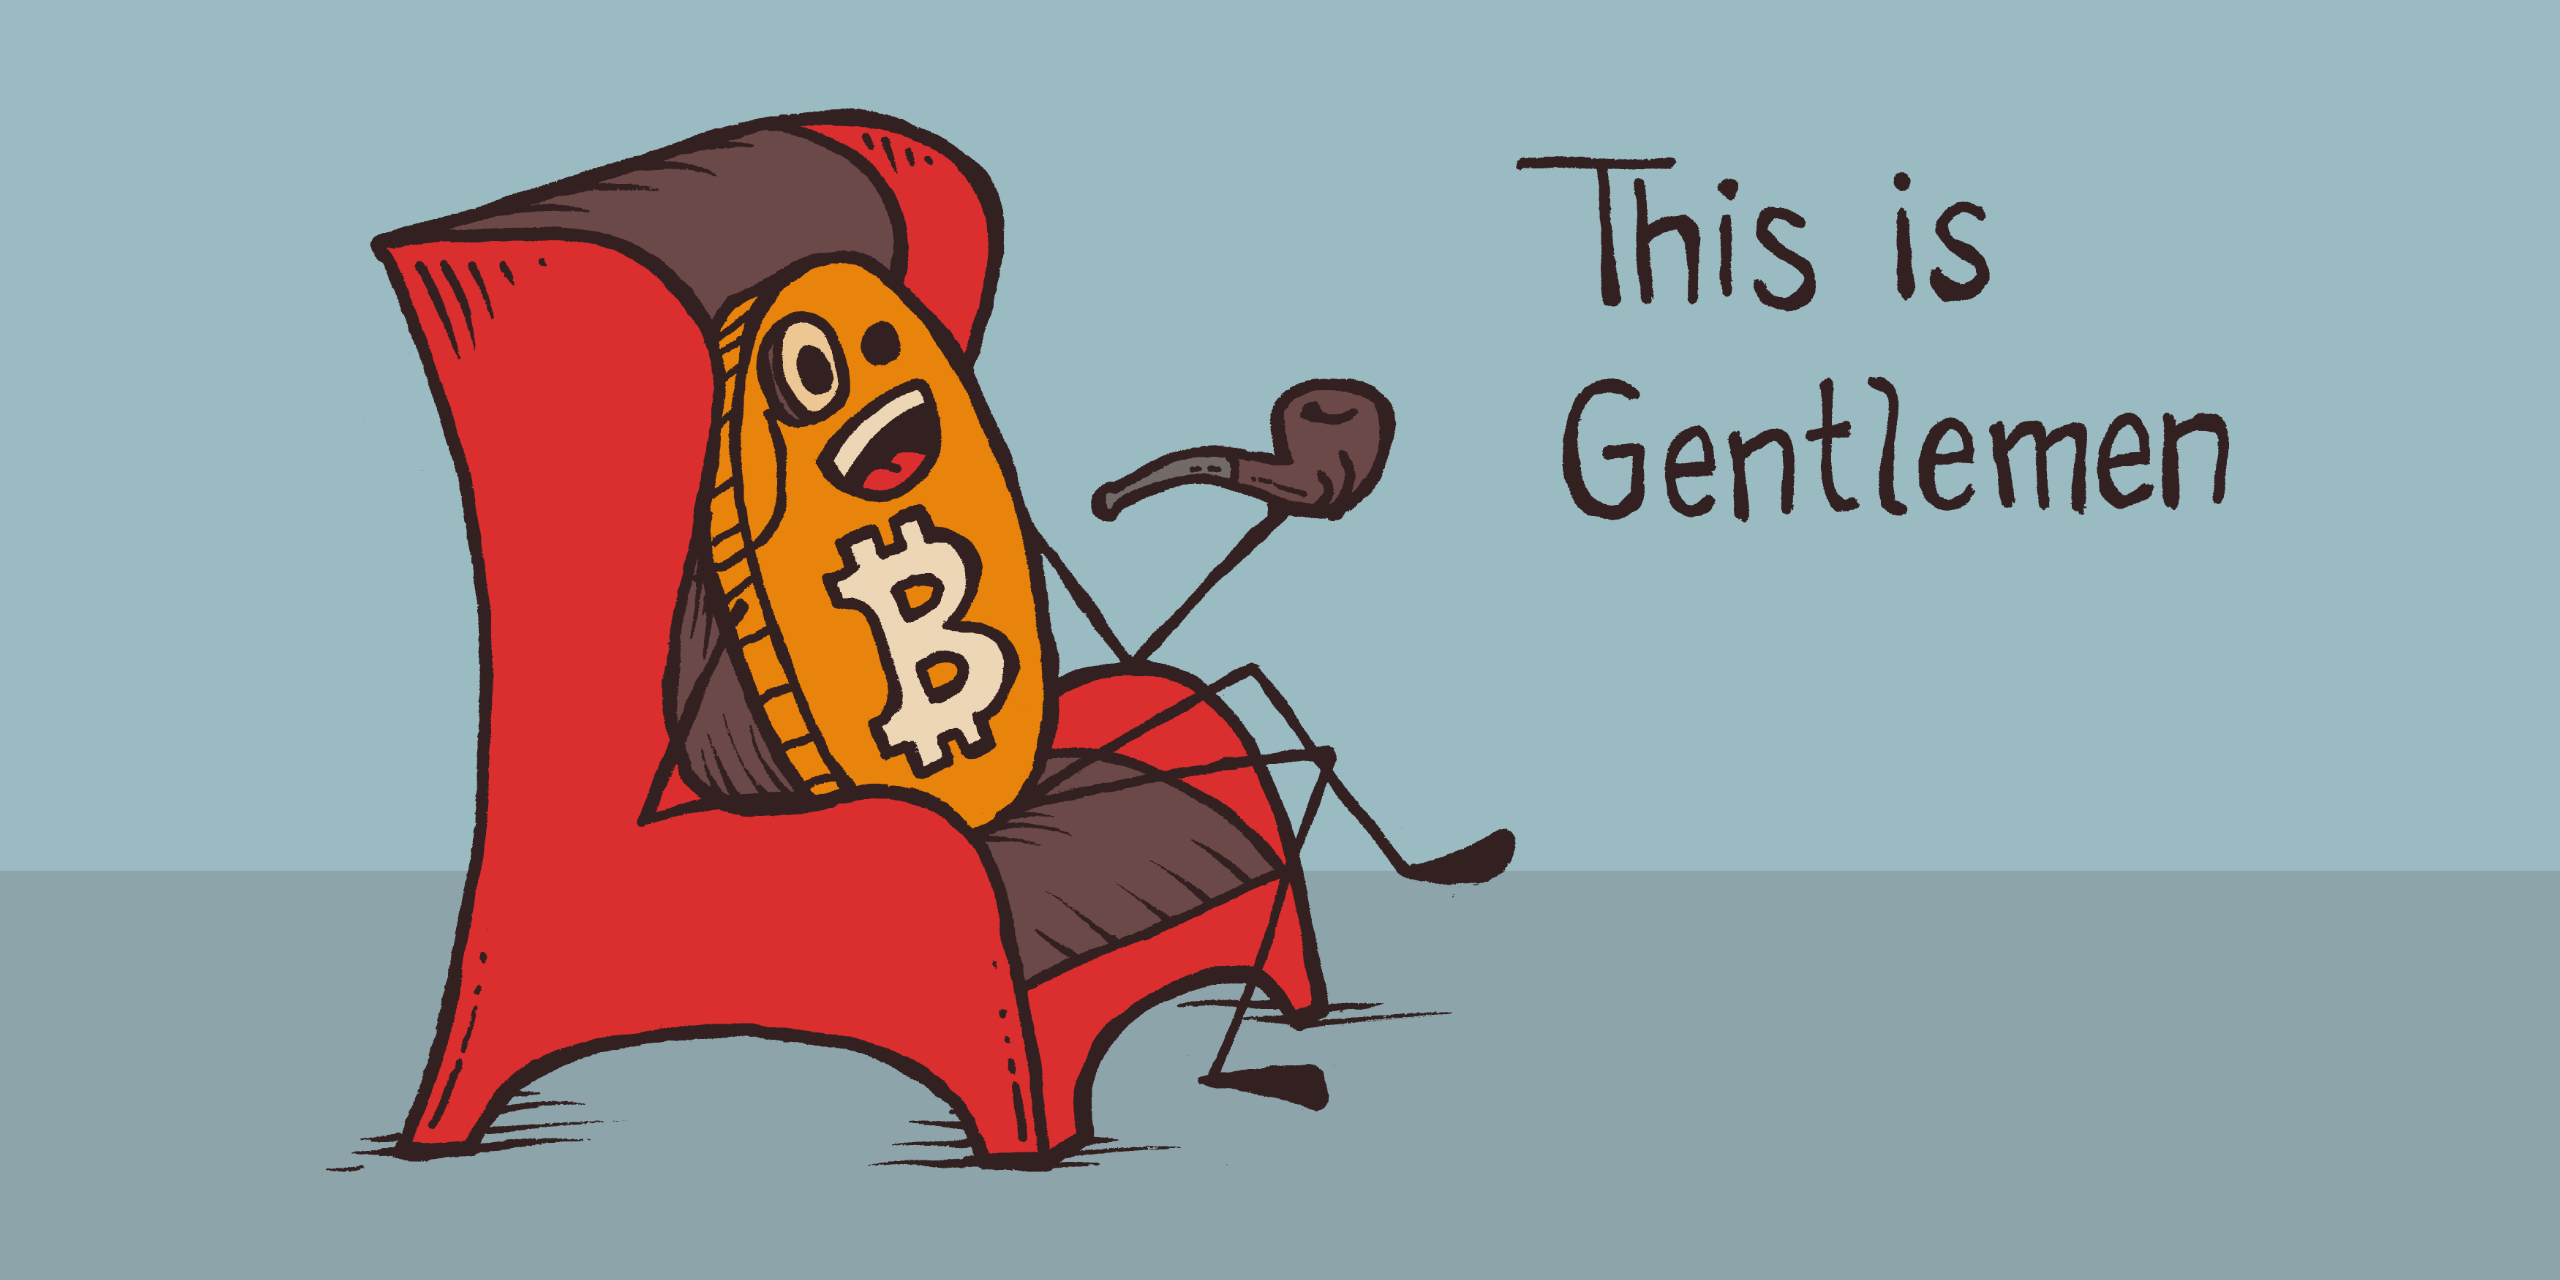 This is Gentlemen Bitcoin roller coaster guy with pipe in throne